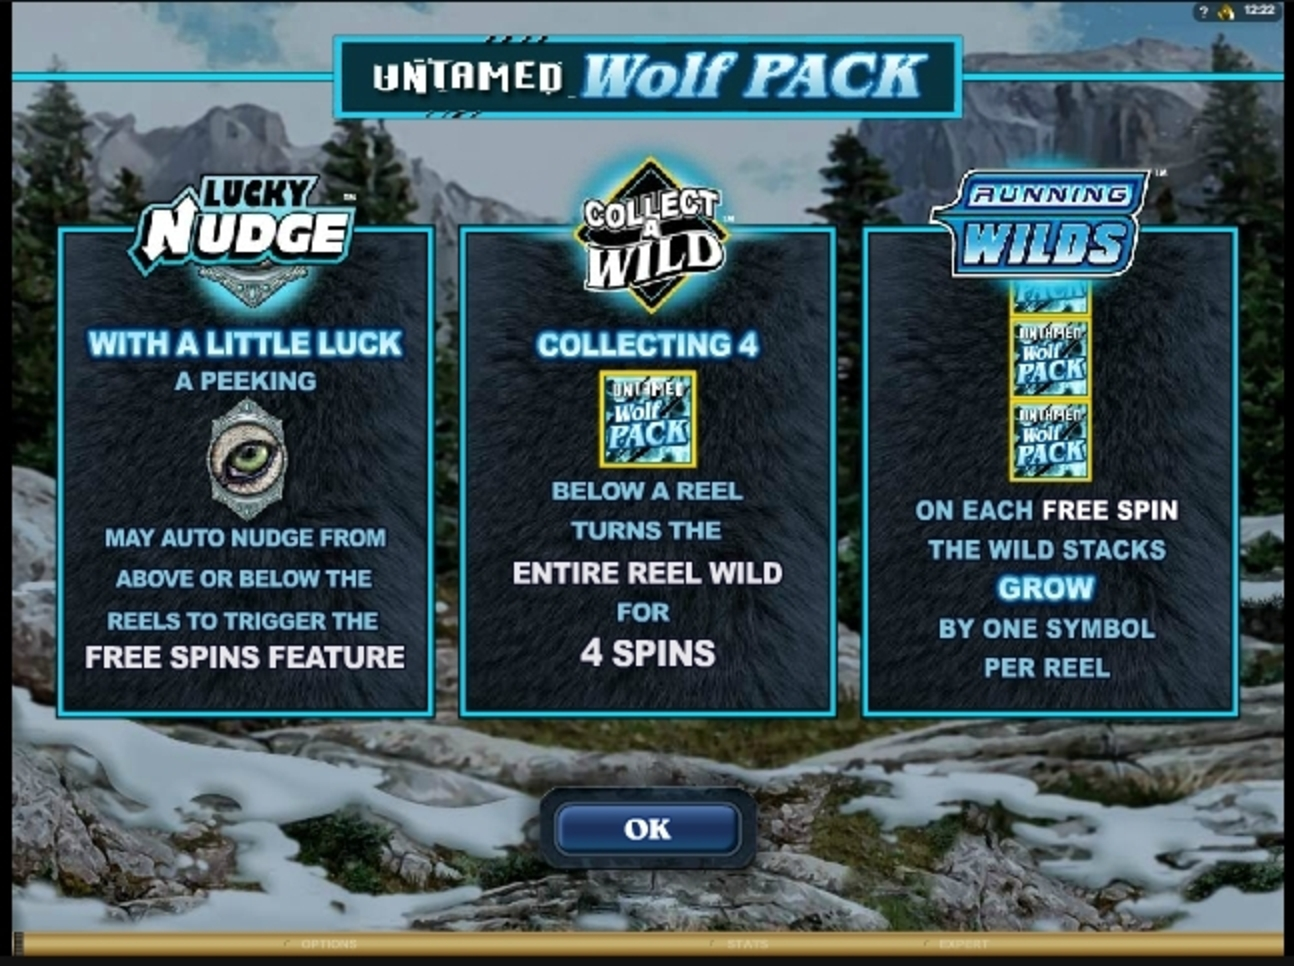 Play Untamed Wolf Pack Free Casino Slot Game by Microgaming